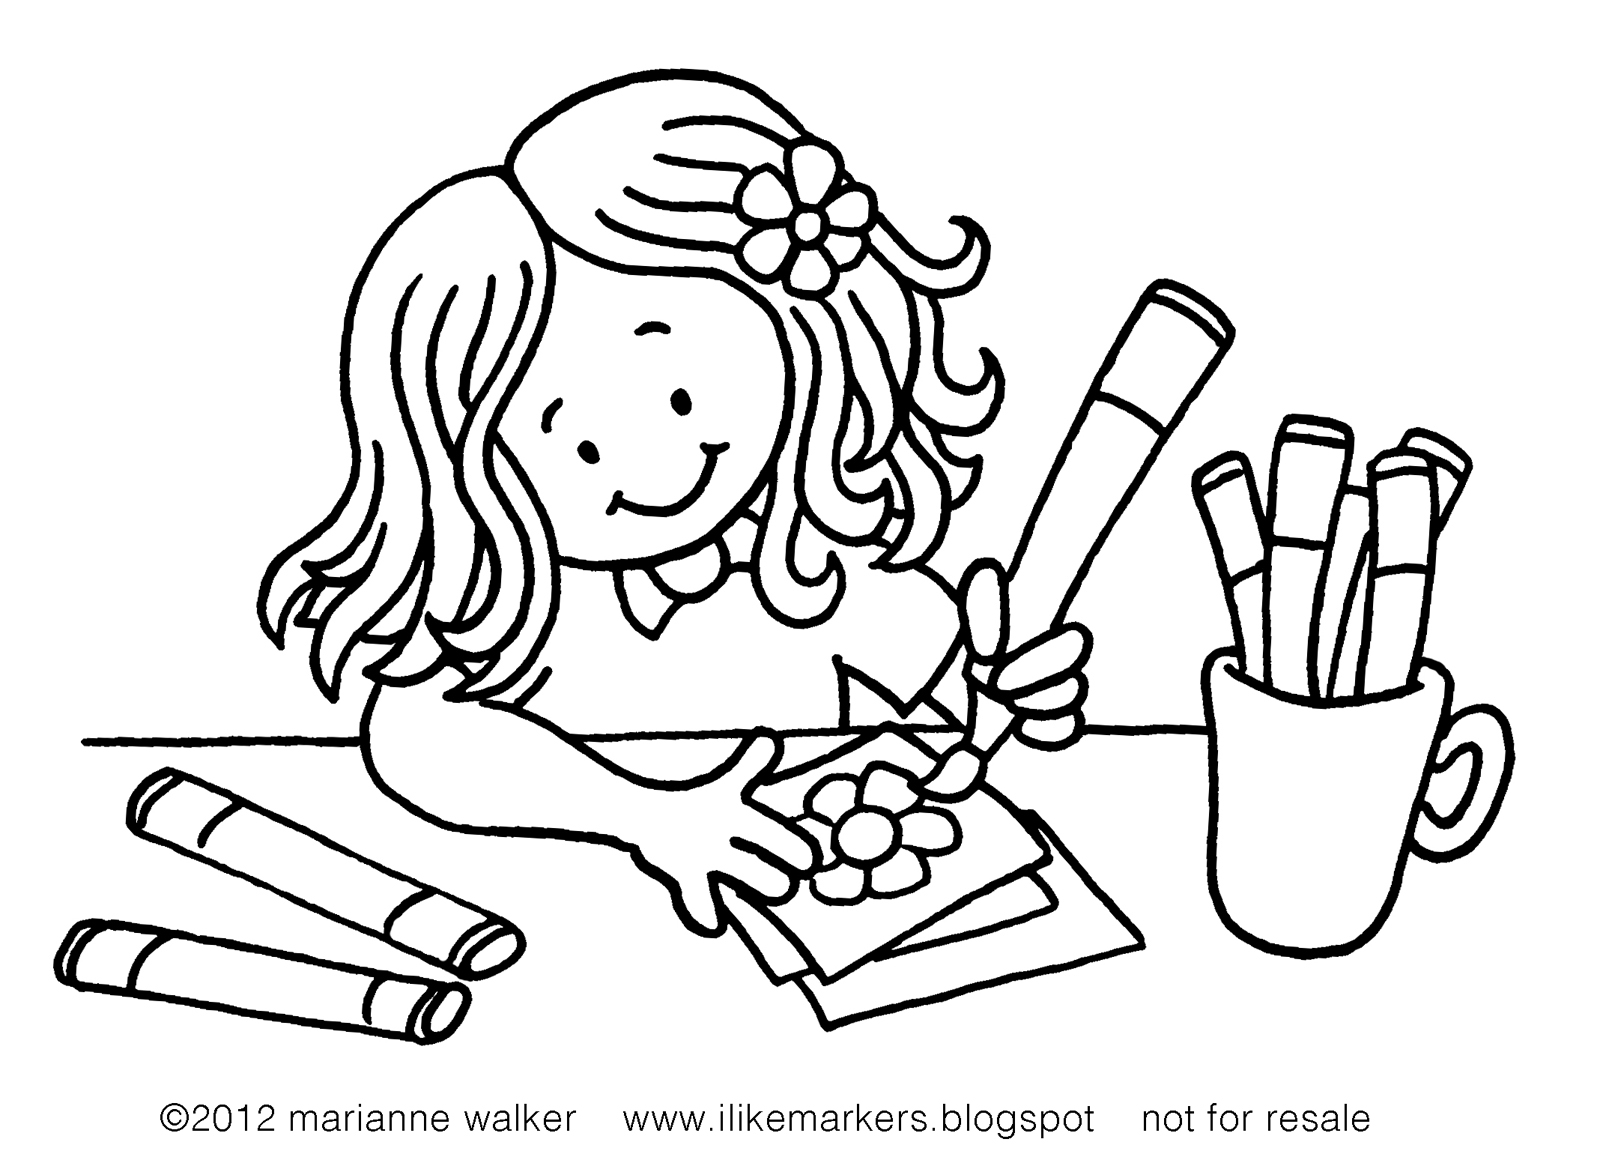 Adult Top Writing Coloring Pages Images best i like markers april 2012 color with me gallery images